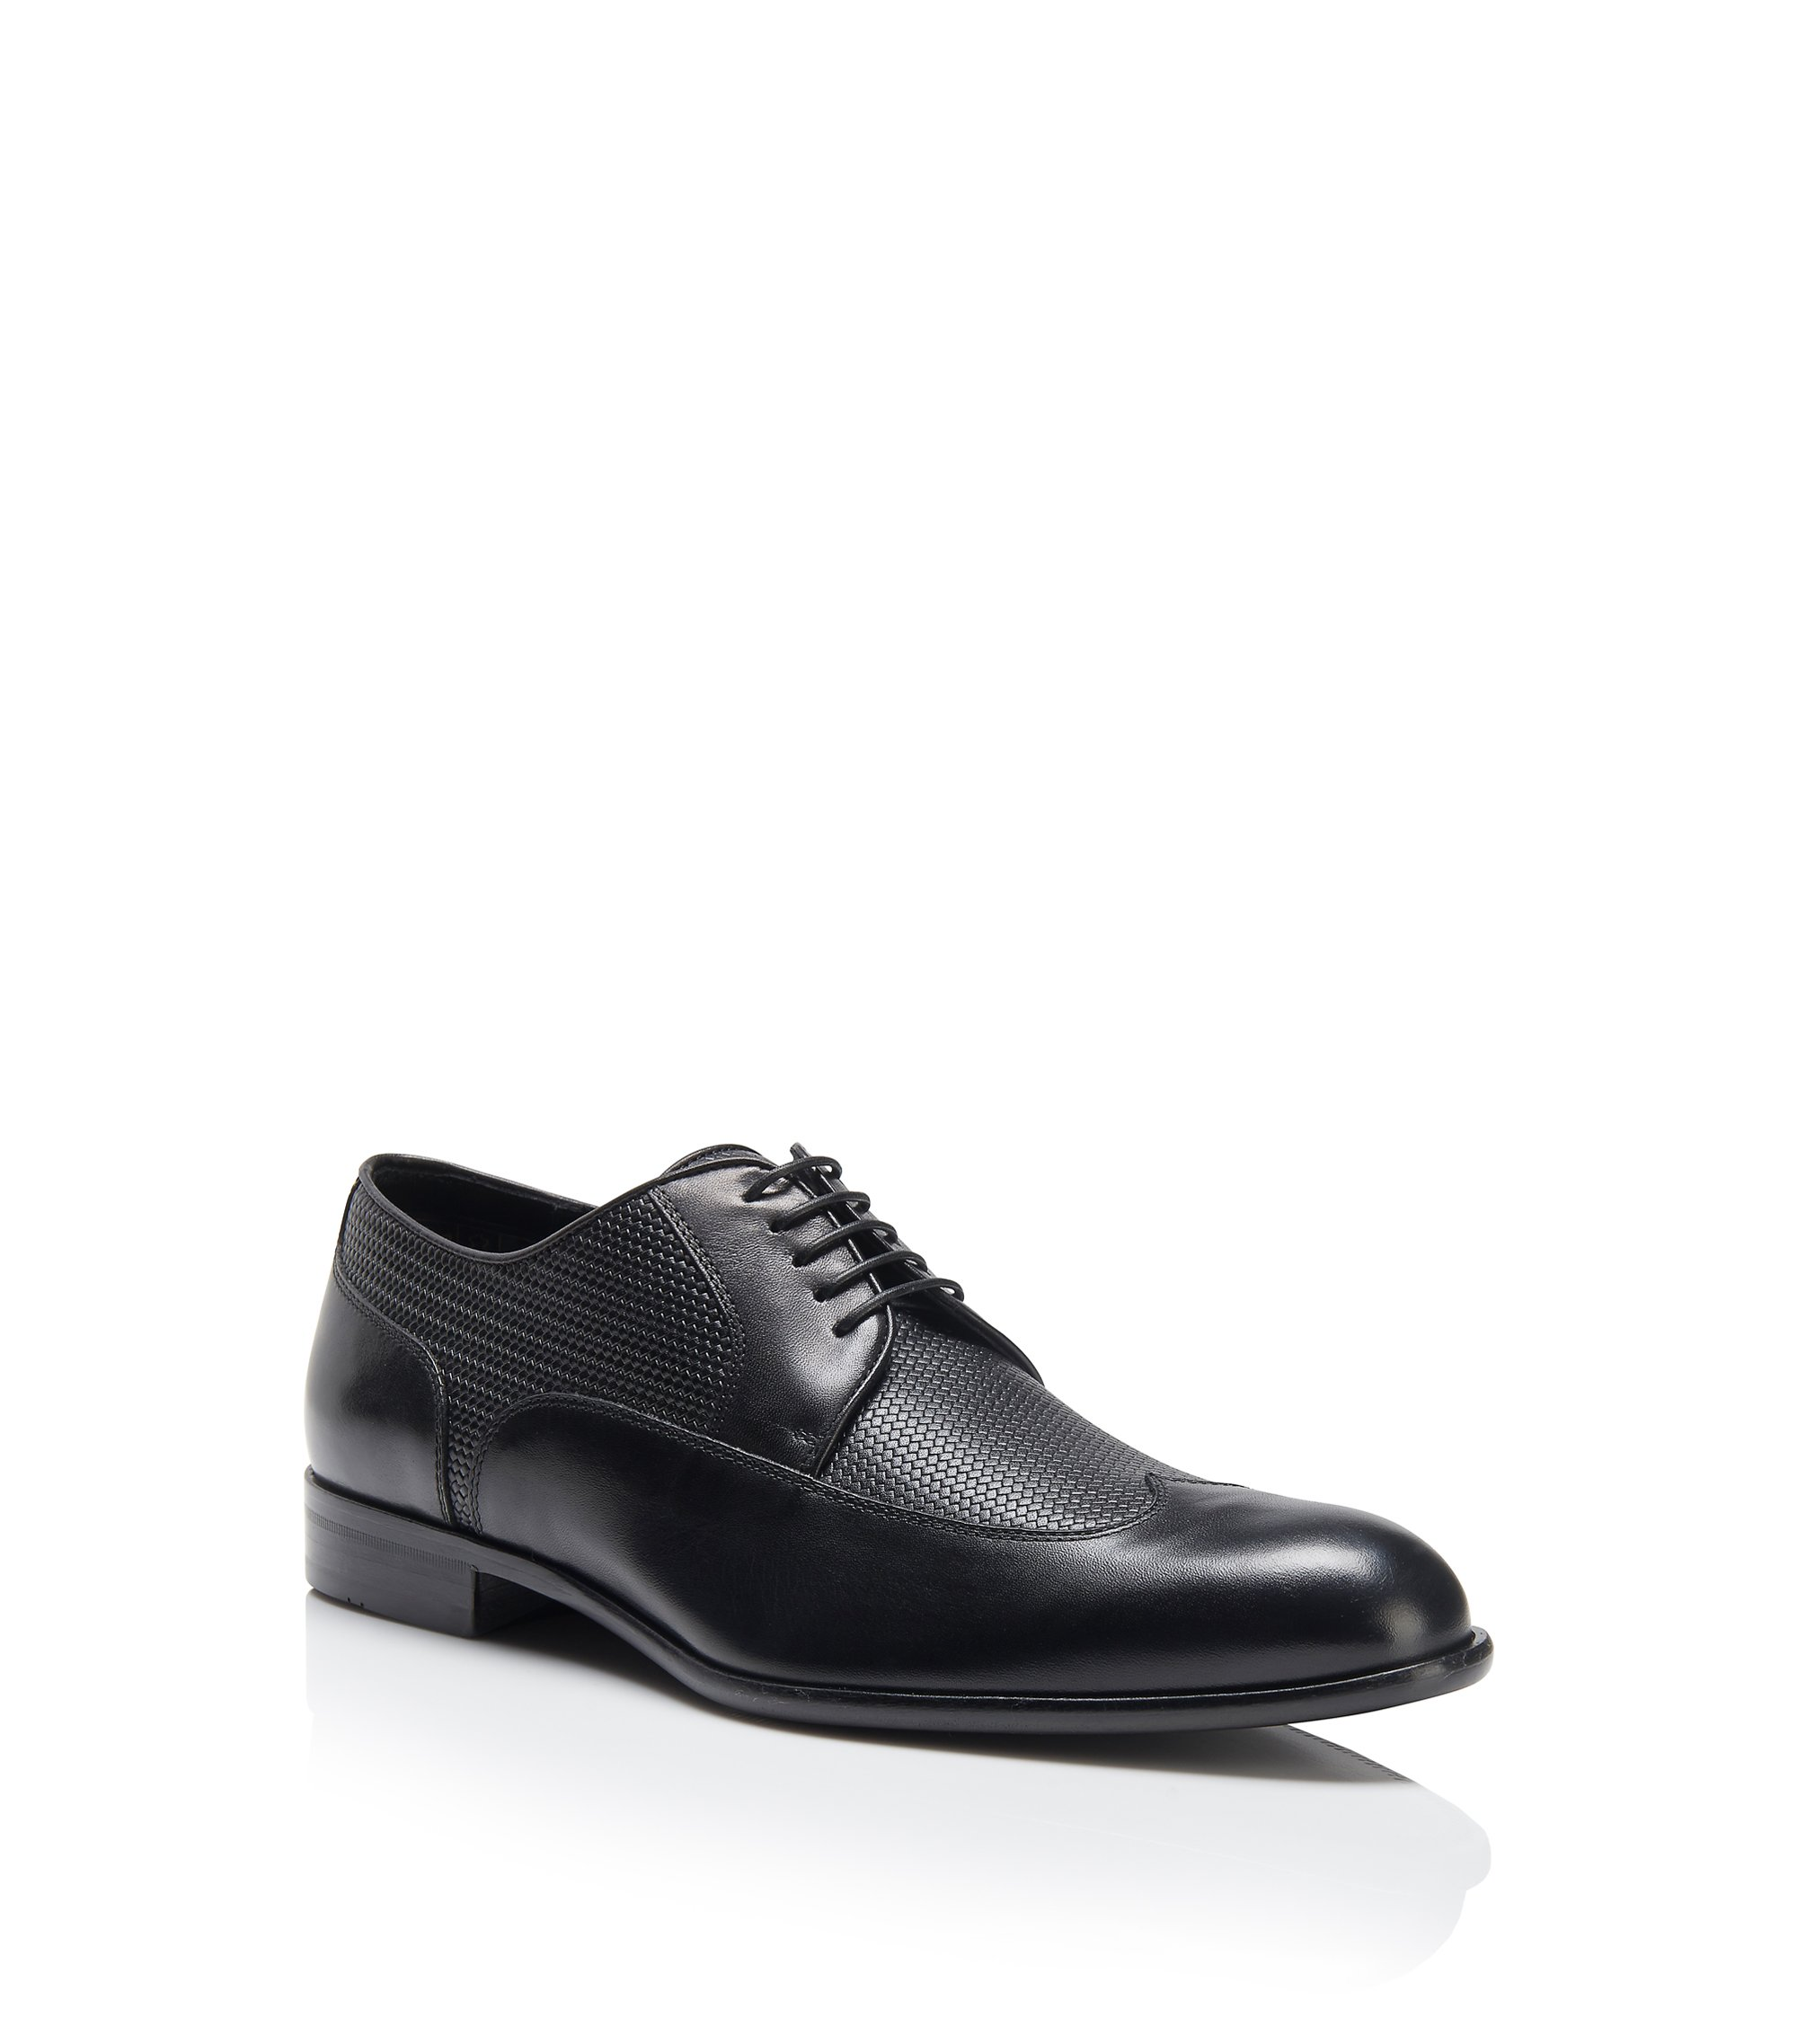 Italian Leather Wingtip Derby Dress Shoe | Maderb, Black